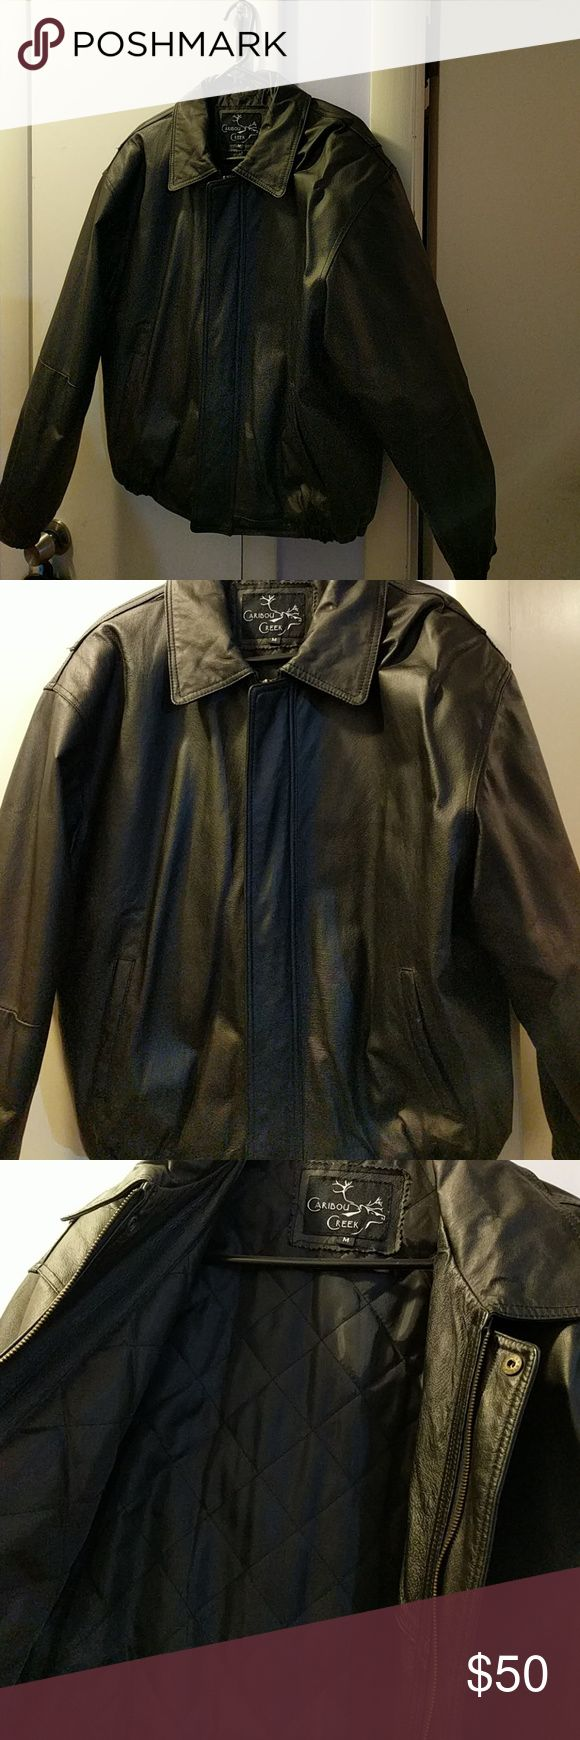 Caribou Creek men's leather coat Black leather outer, nylon lining. 1 inner pocket. Never been worn, in terrific shape. & Other Stories Jackets & Coats Bomber & Varsity